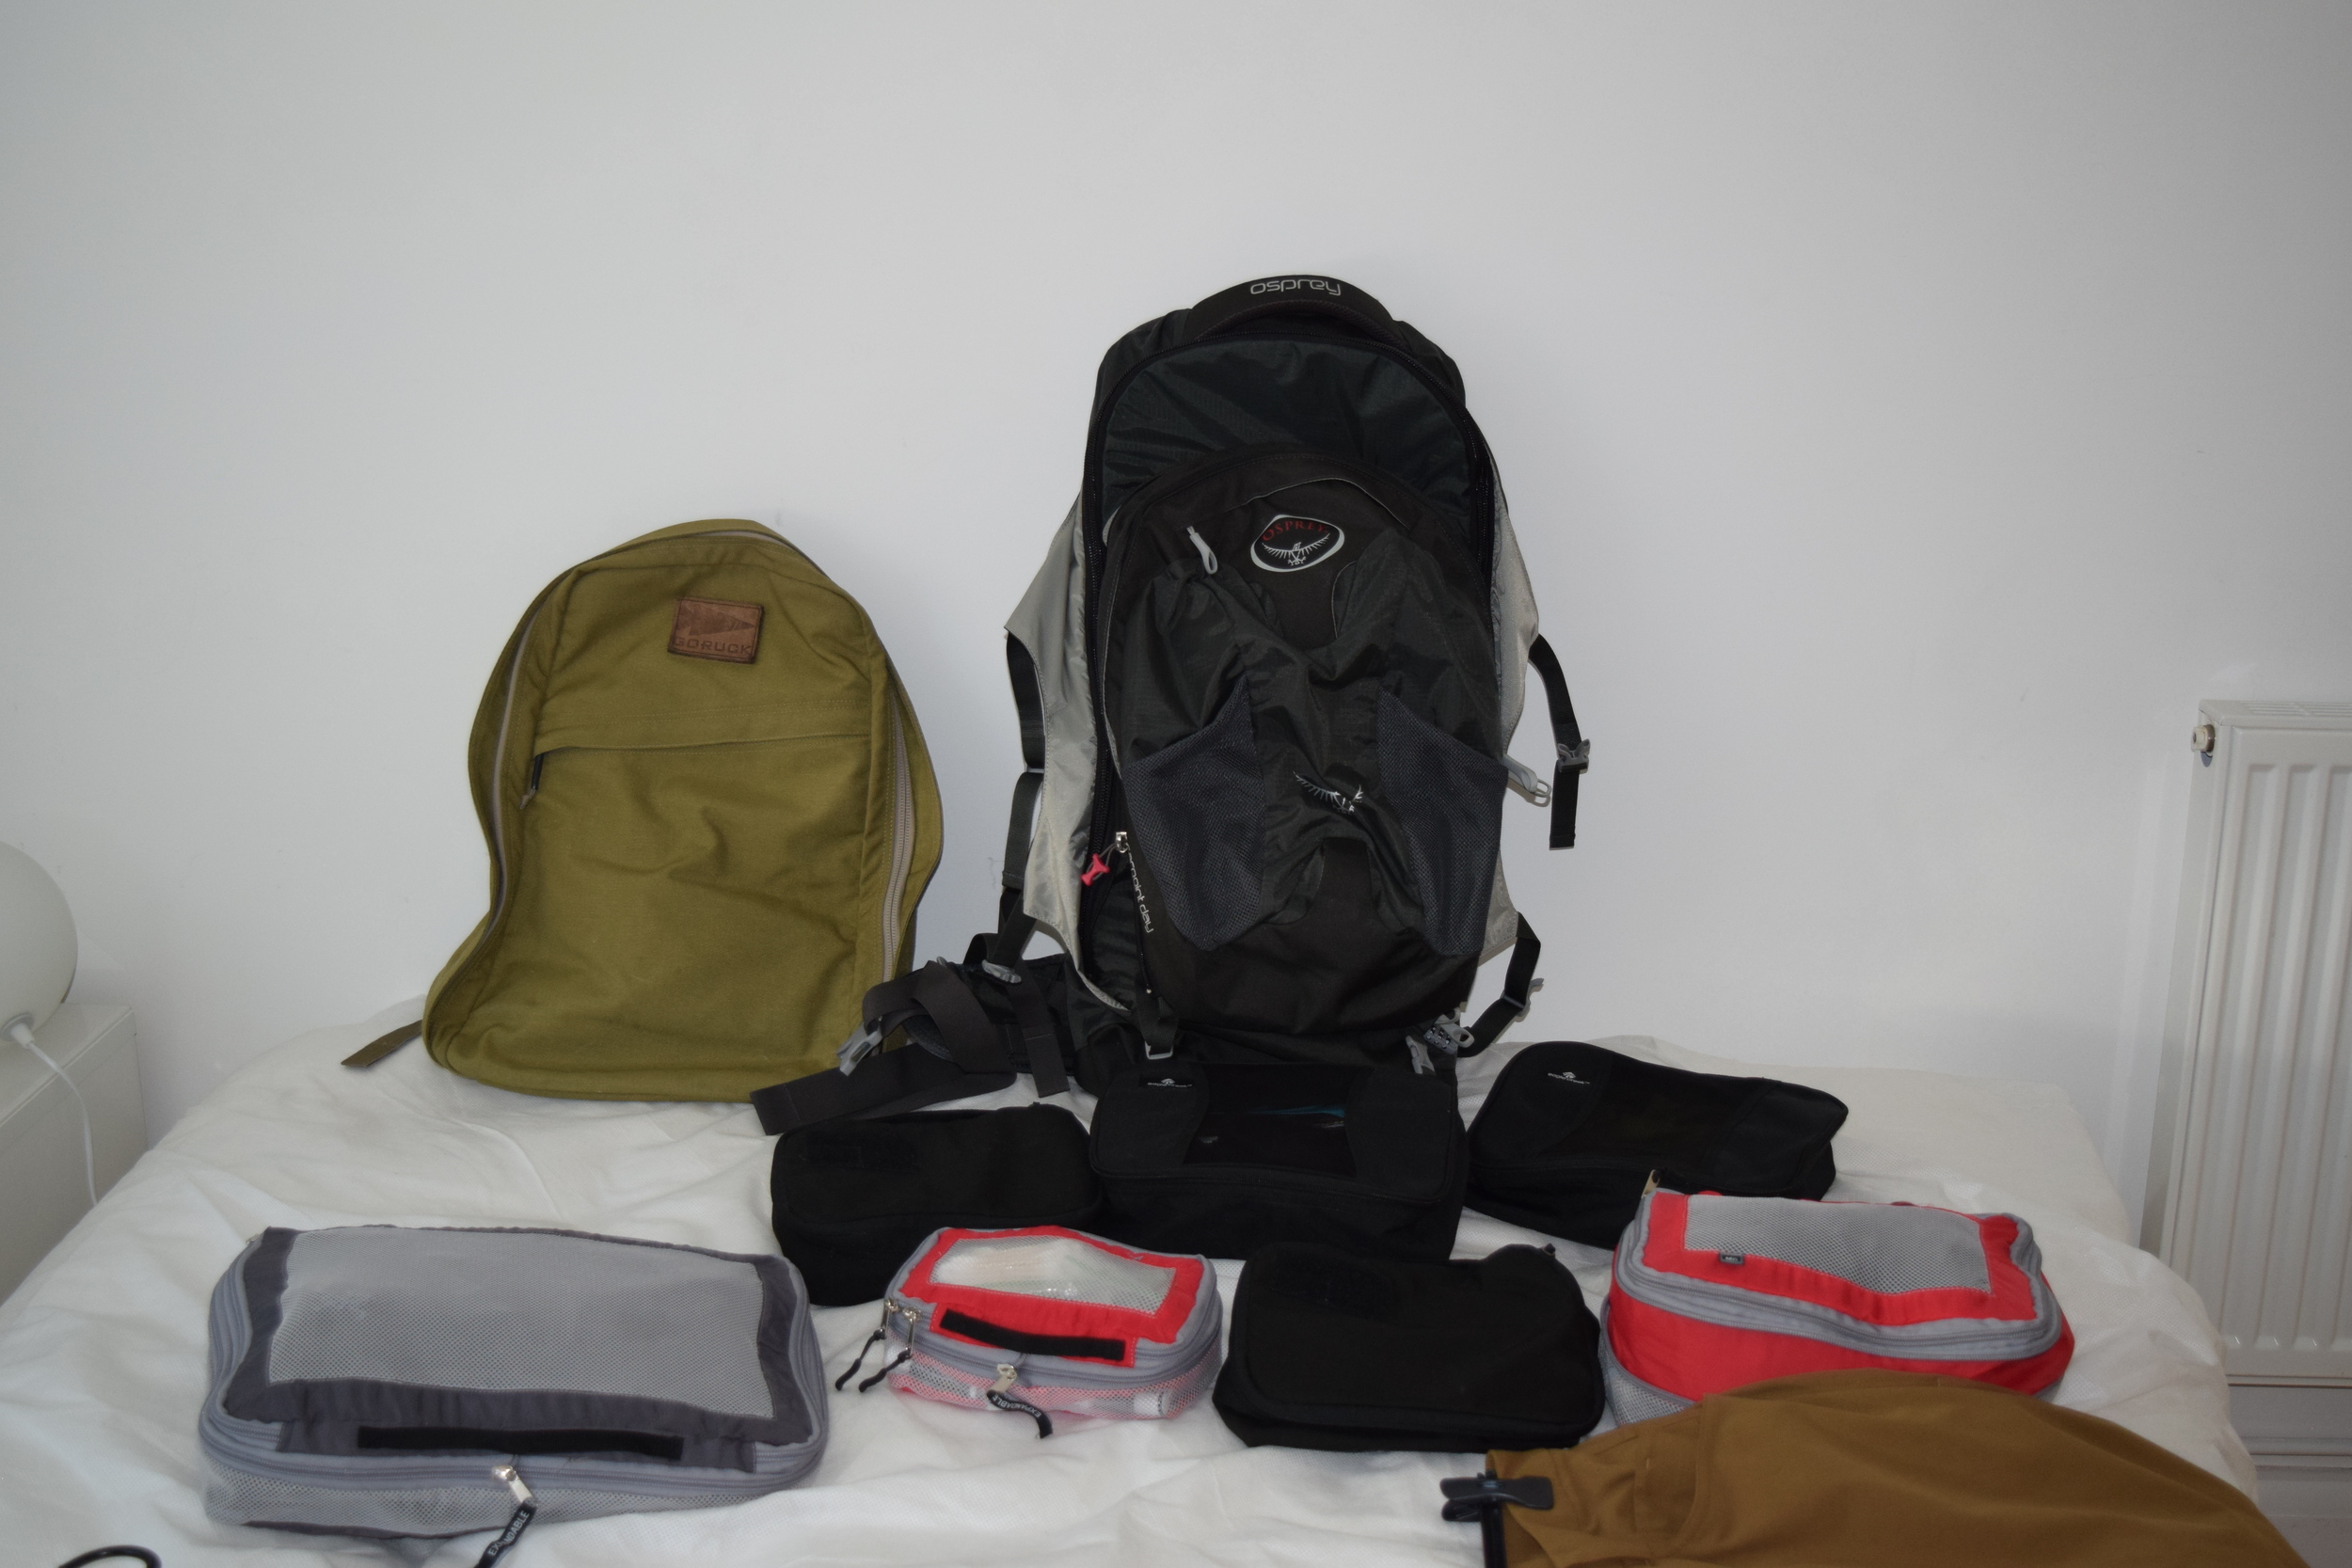 Bags and packing cubes